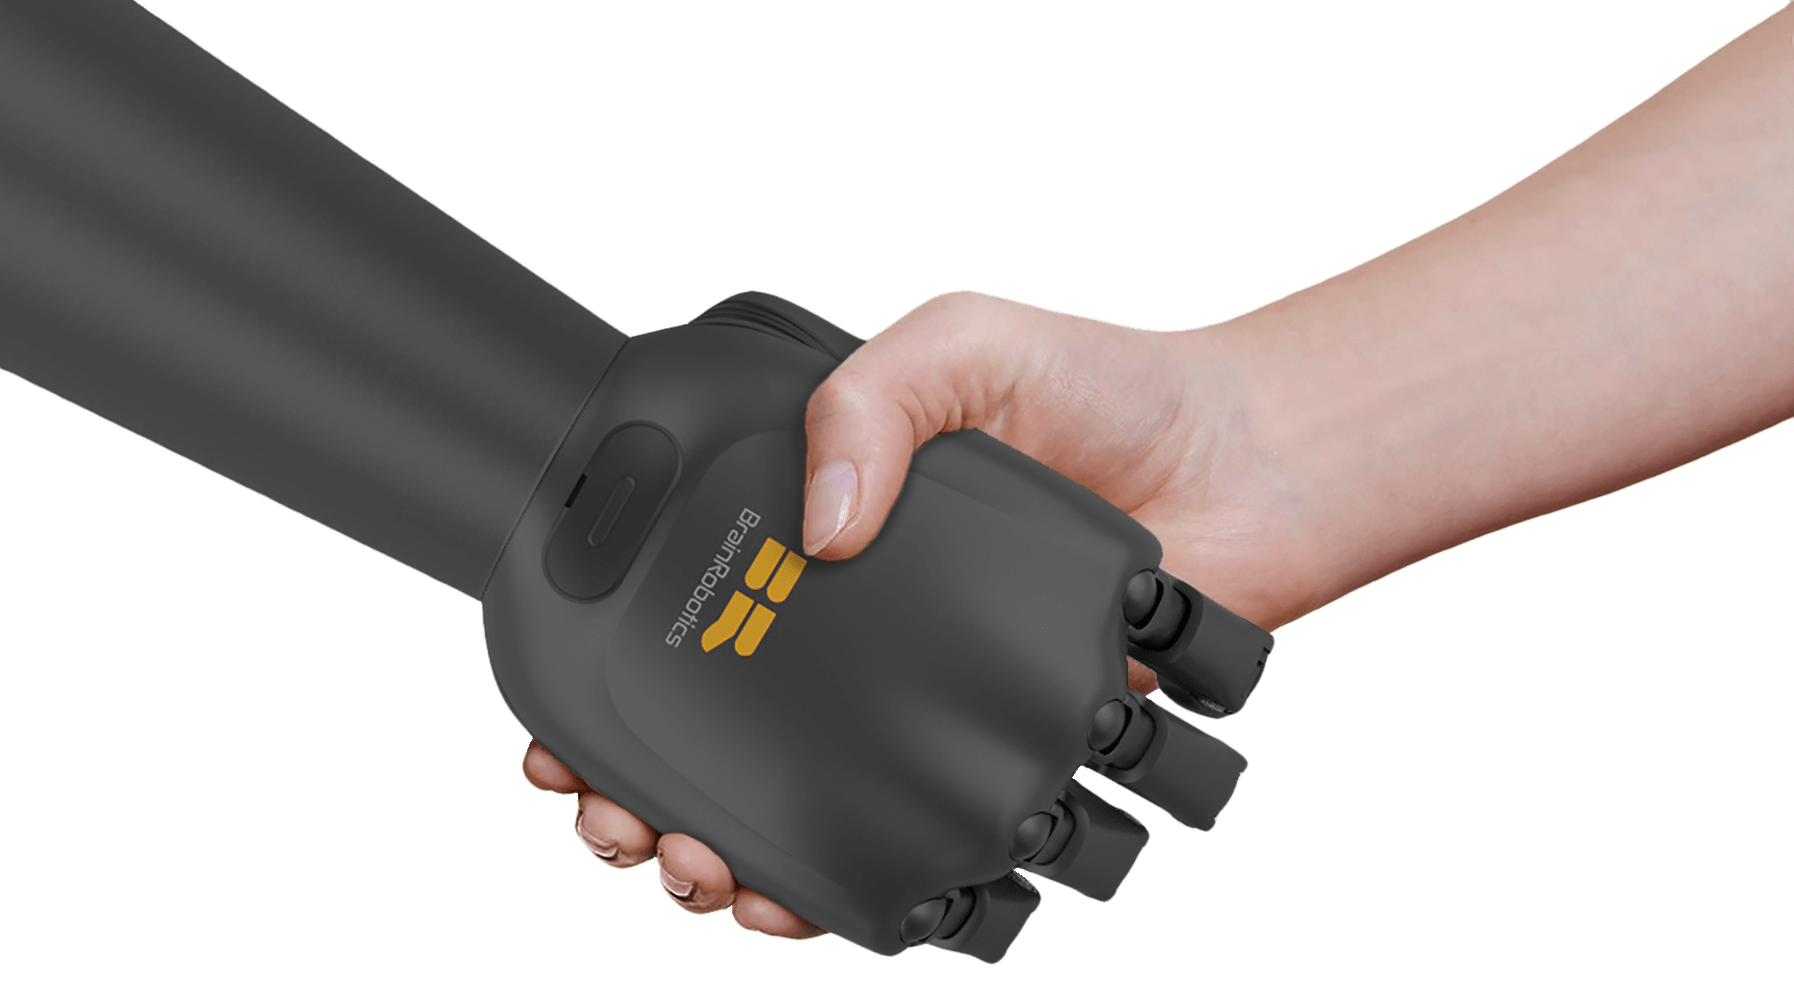 Natural movement robotic prosthetic hand